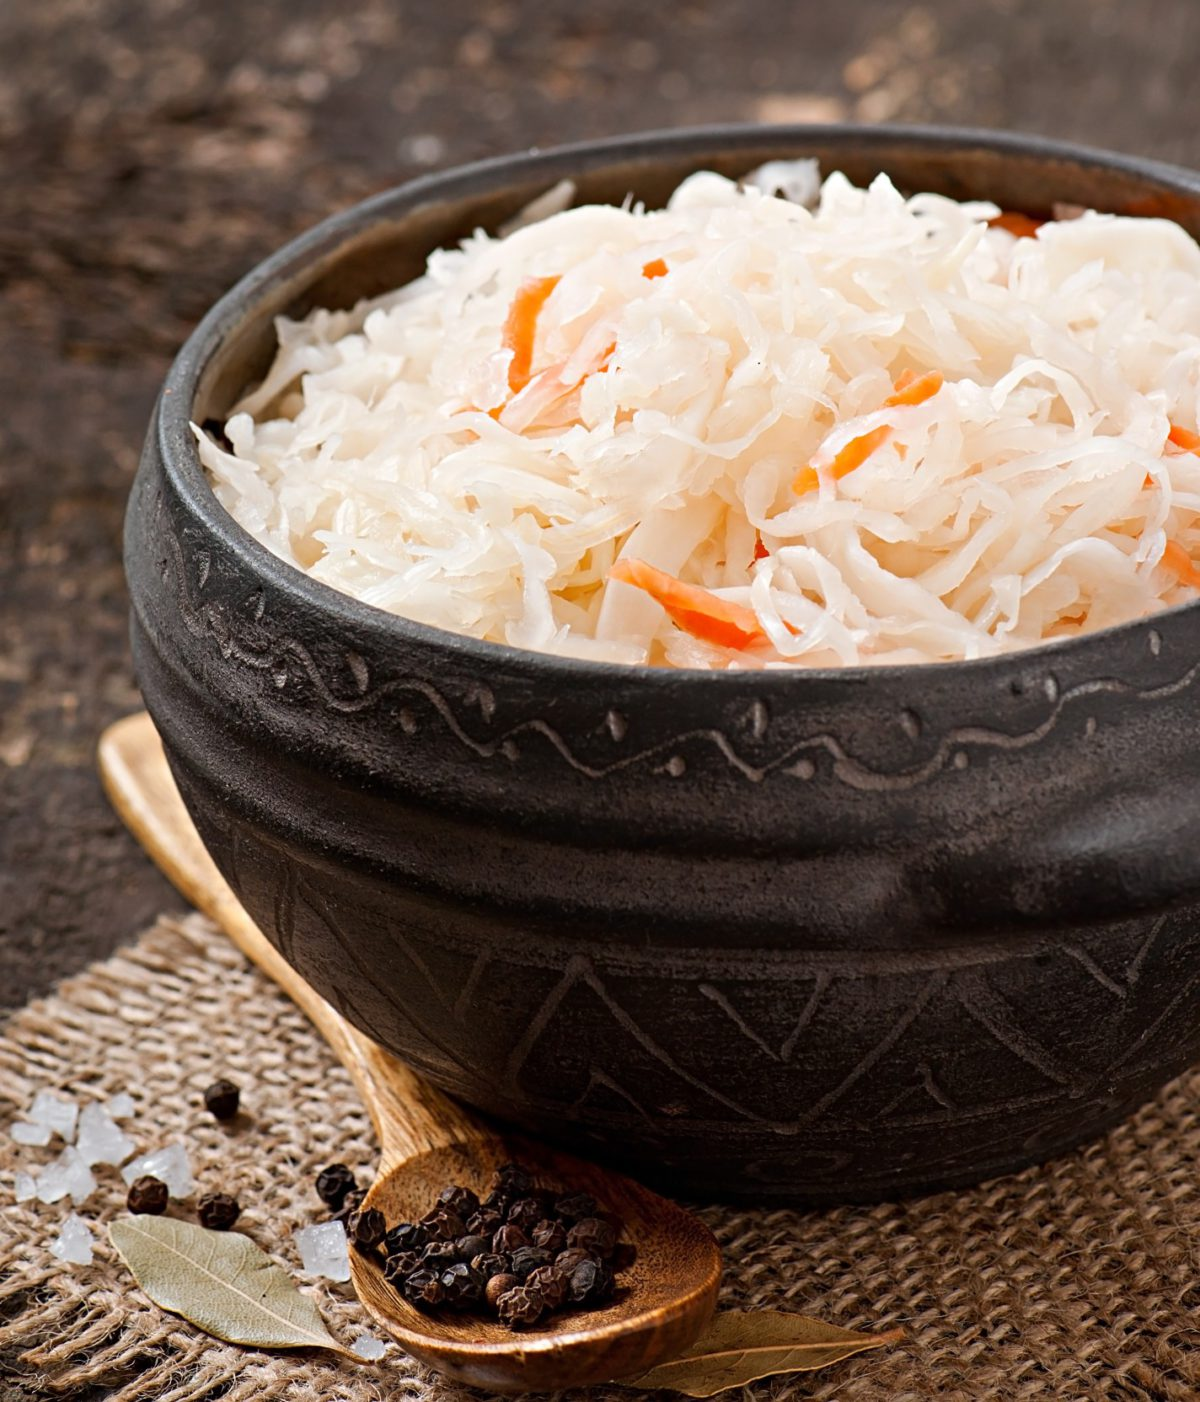 Coleslaw with carrot in a black bowl and a spoon